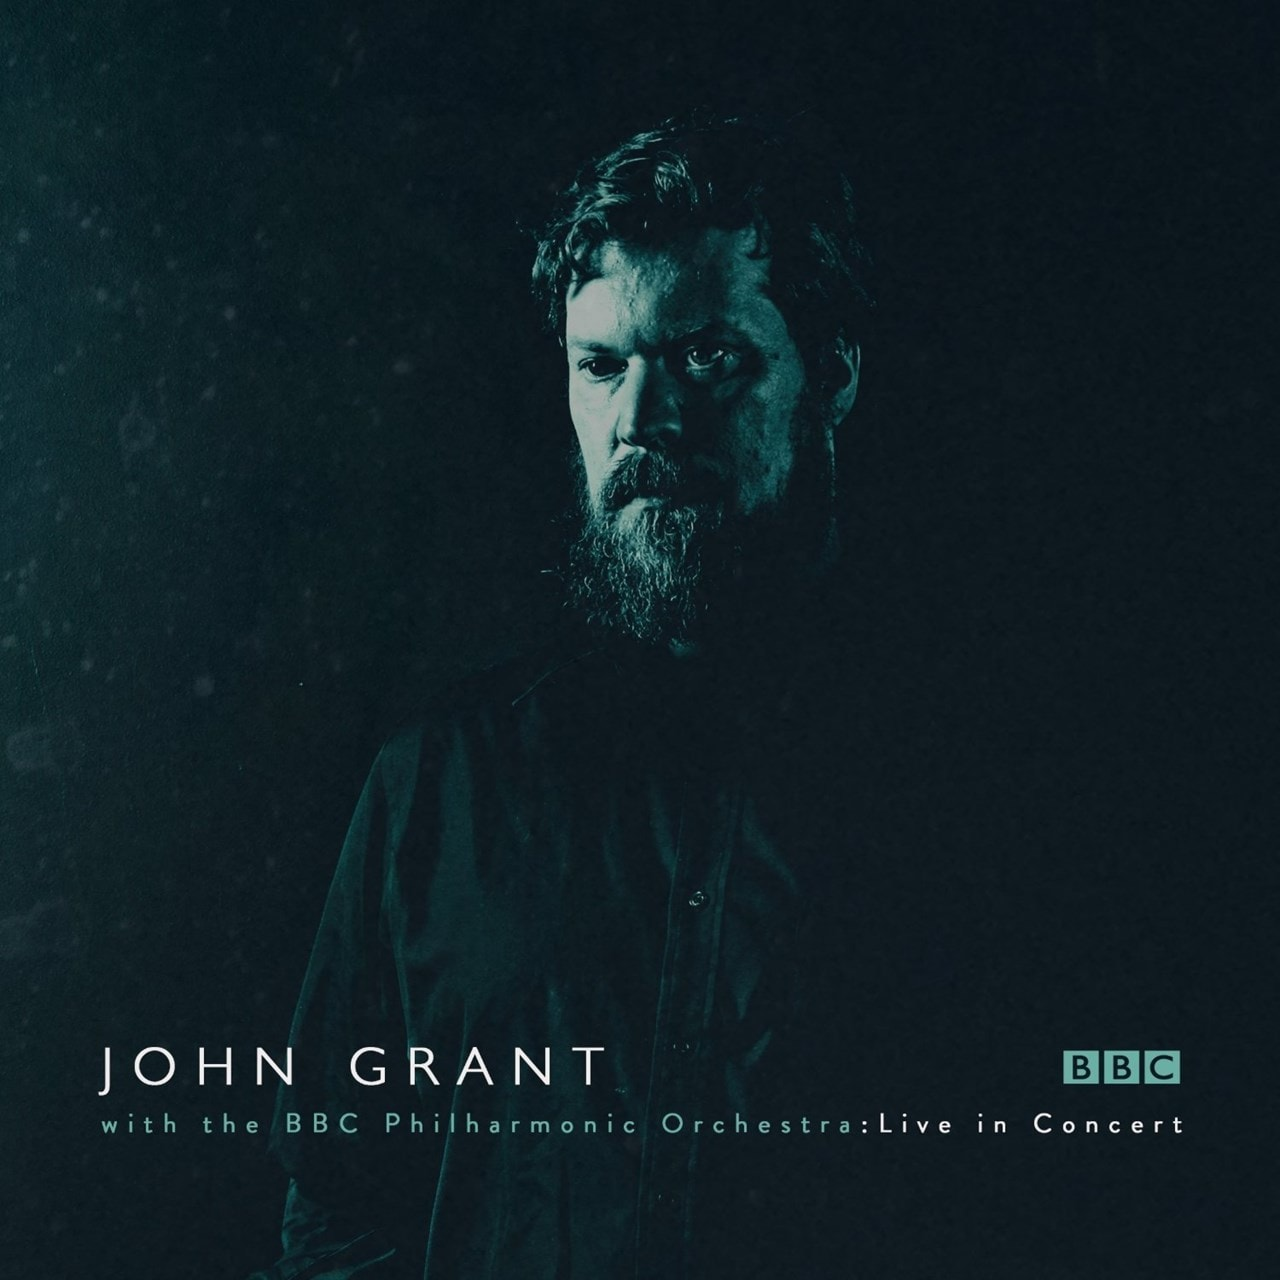 John Grant With the BBC Philharmonic Orchestra: Live in Concert - 1